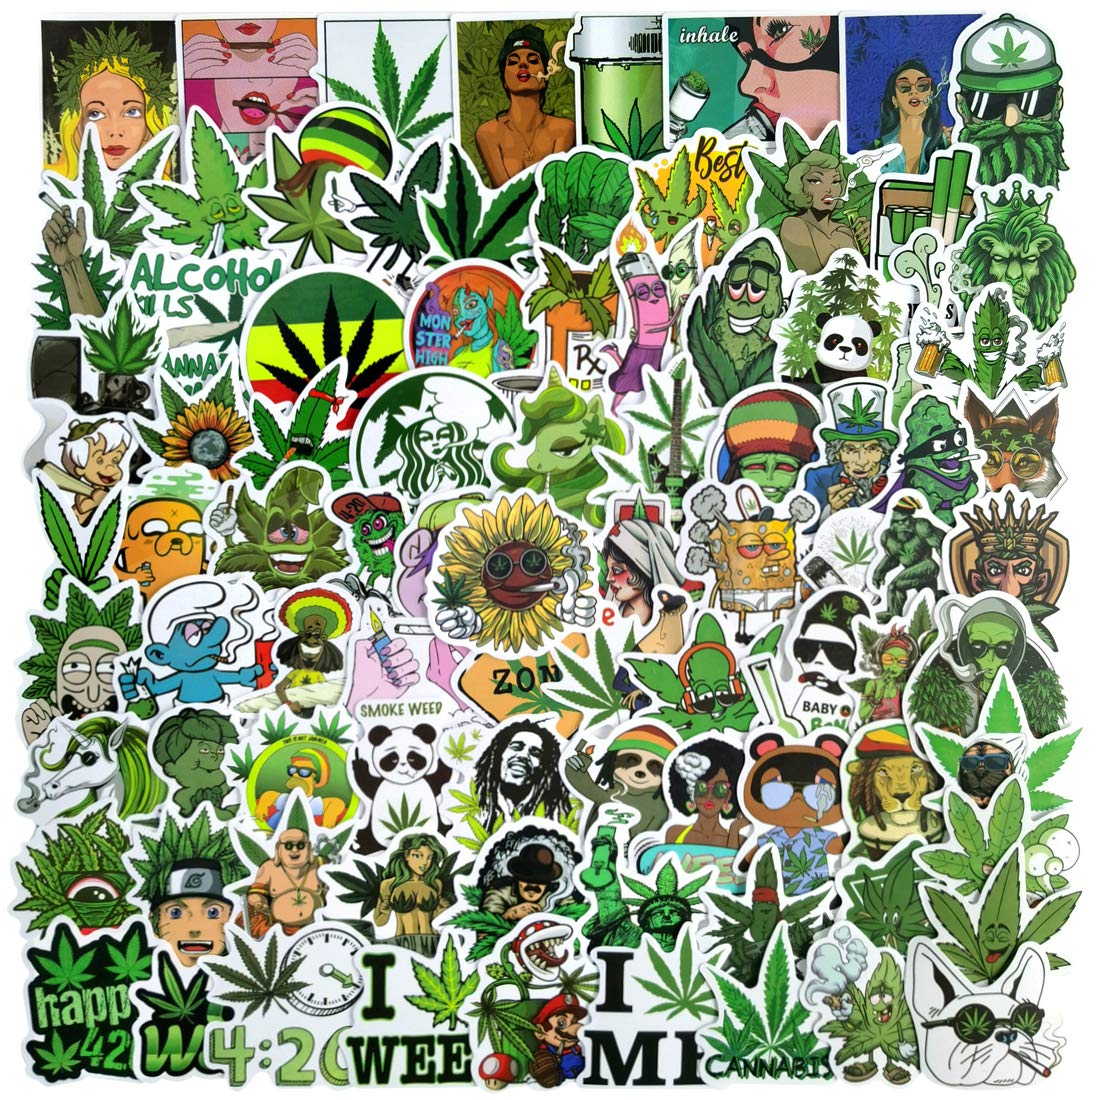 100Pcs Weeds Stickers Waterproof Stickers for Adults Vinyl Decals for Water Bottles